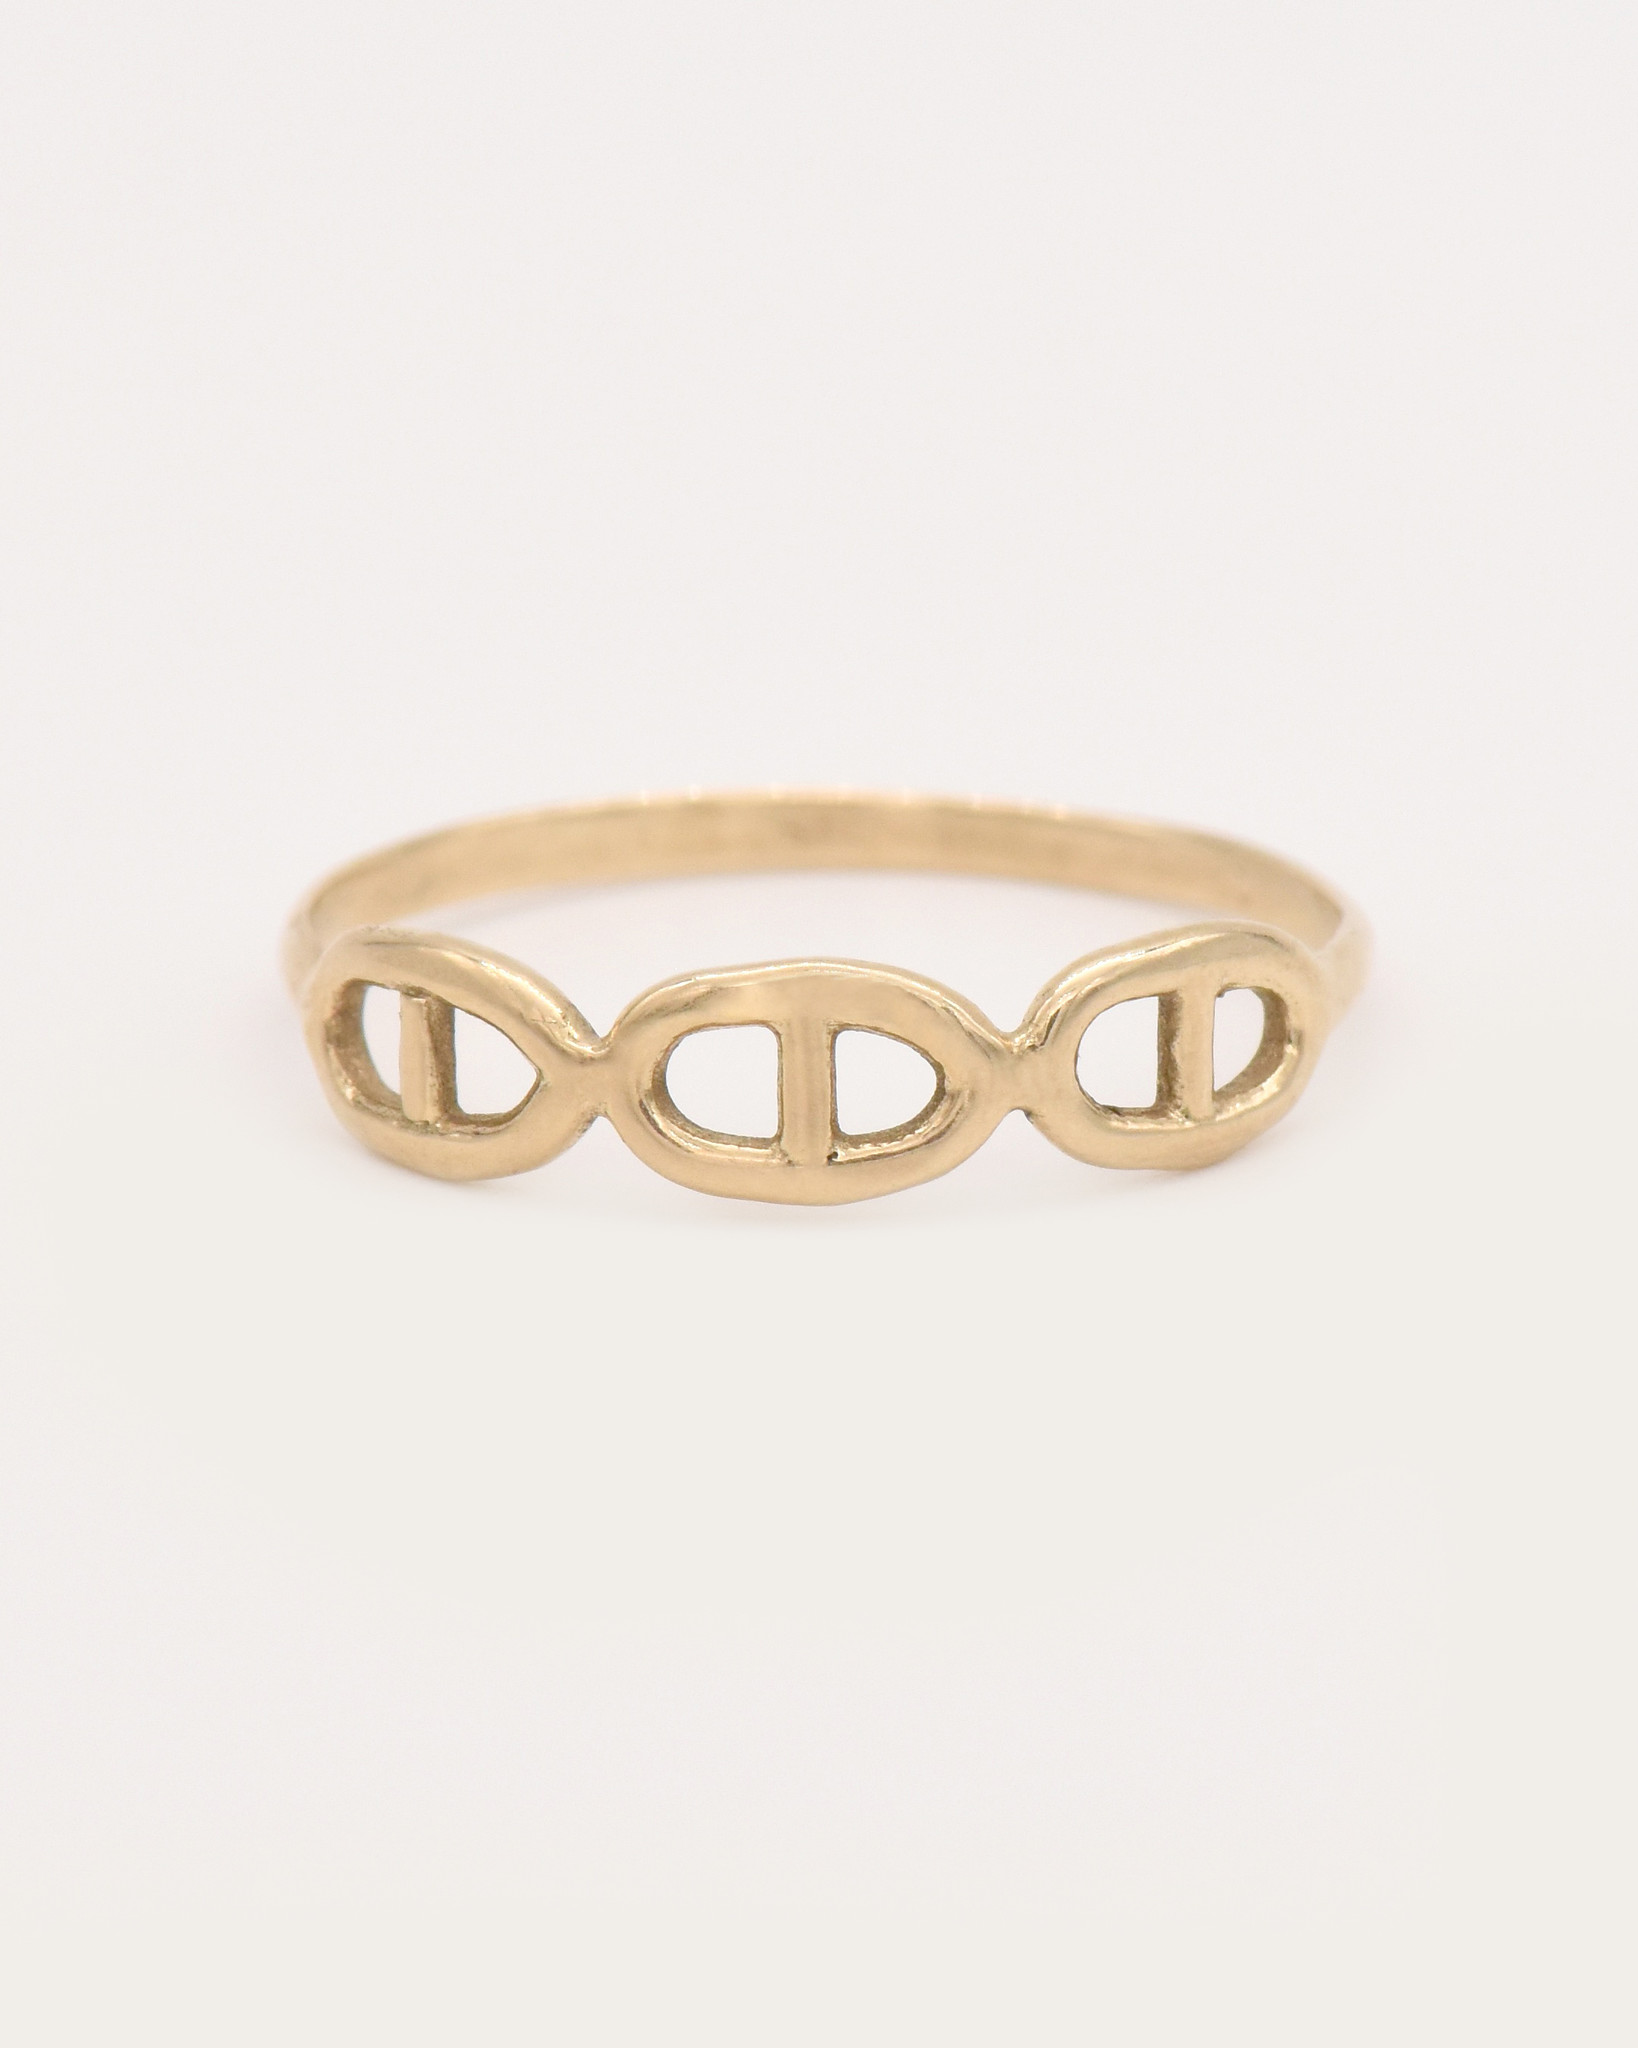 Adriatic Anchor Chain Ring